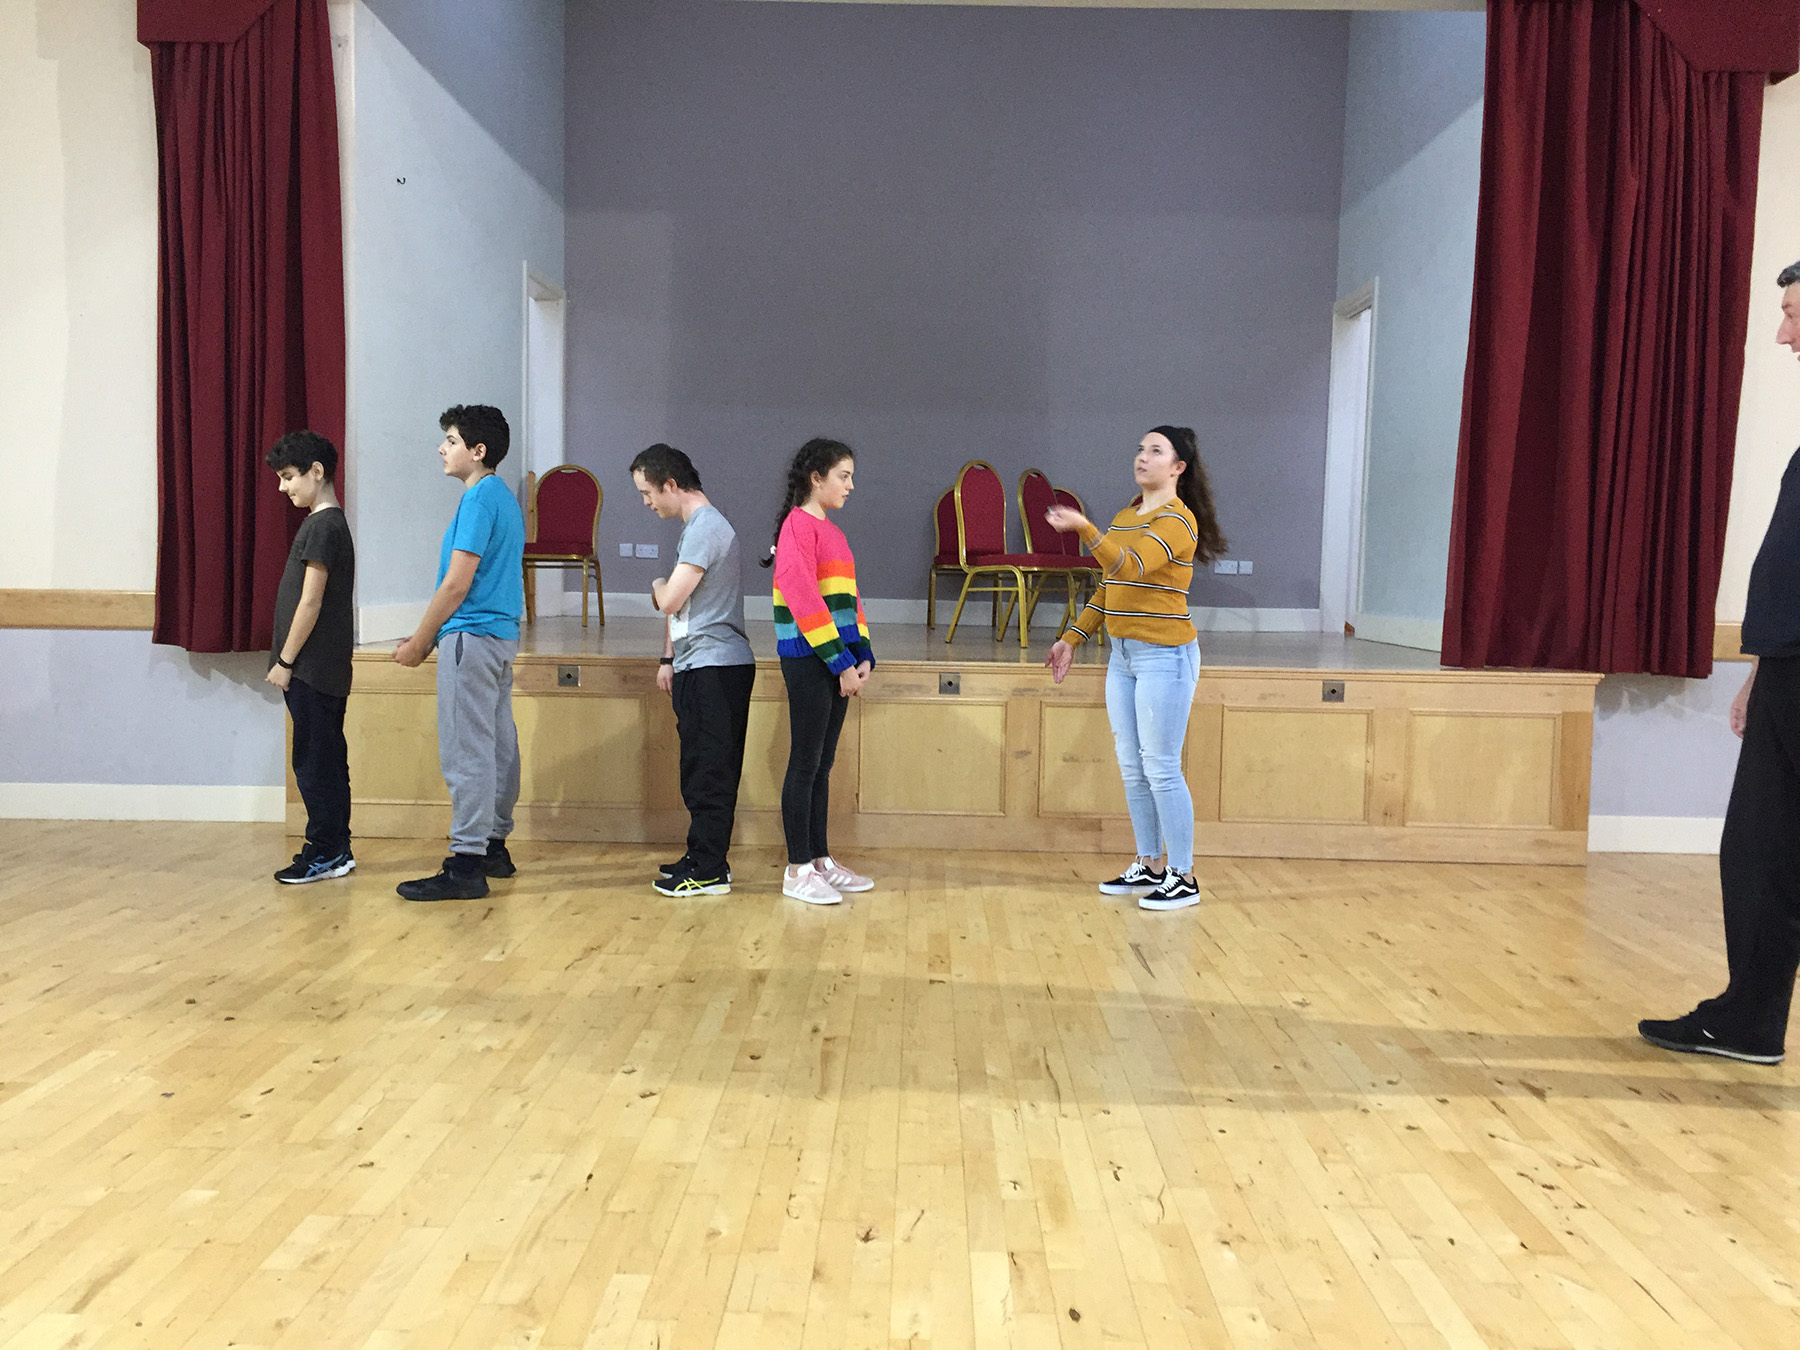 Term 1 (September - December 2018) | Gonzo Youth Theatre